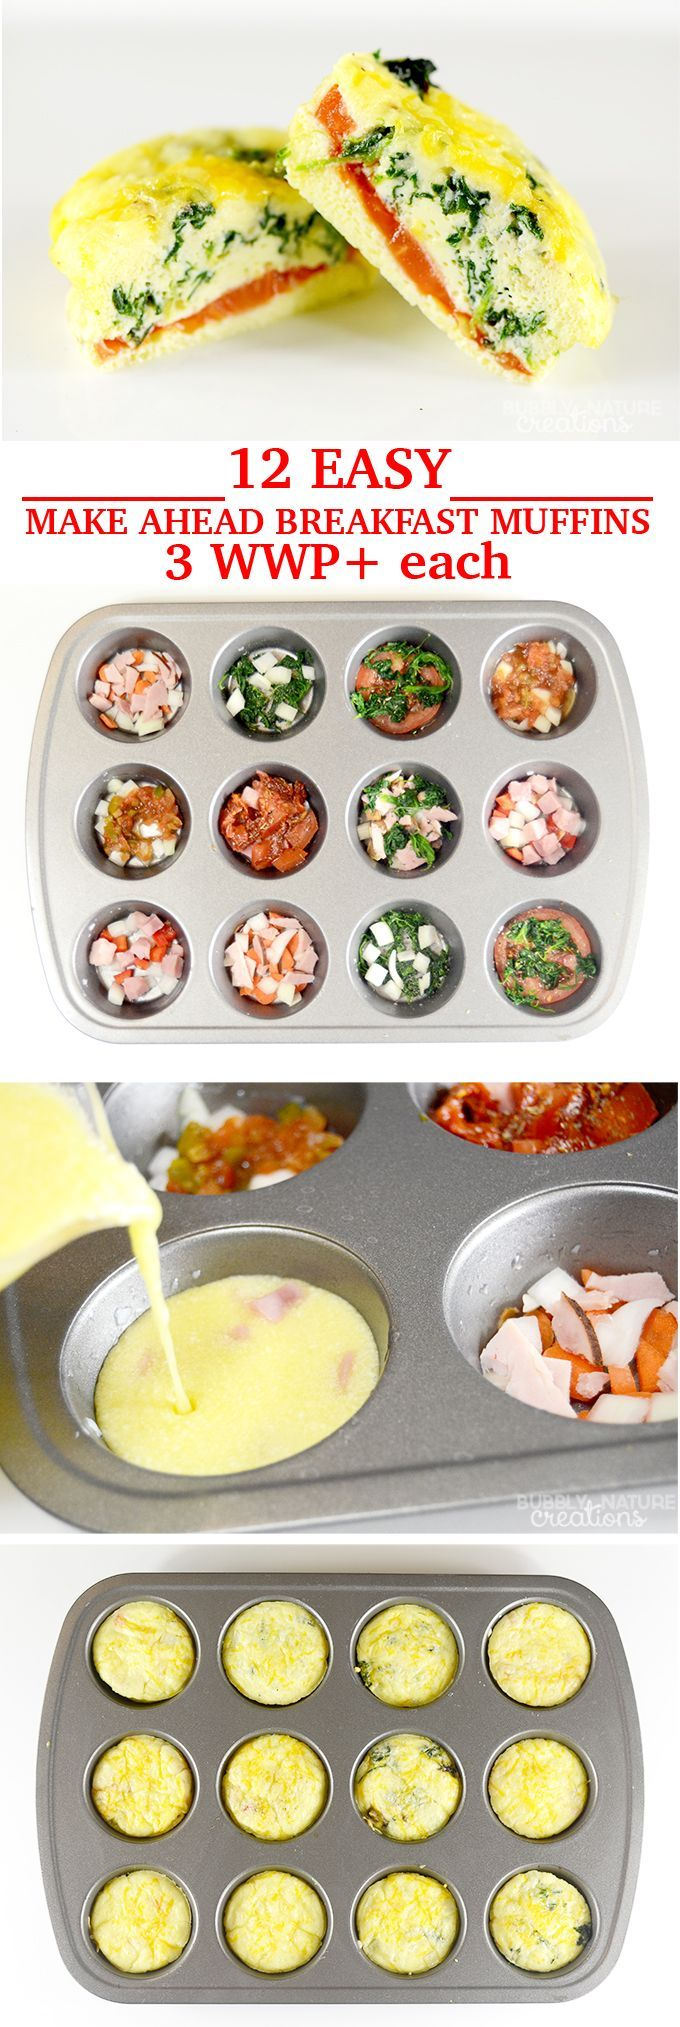 Make ahead breakfast recipes pictures photos and images for make ahead breakfast recipes forumfinder Choice Image